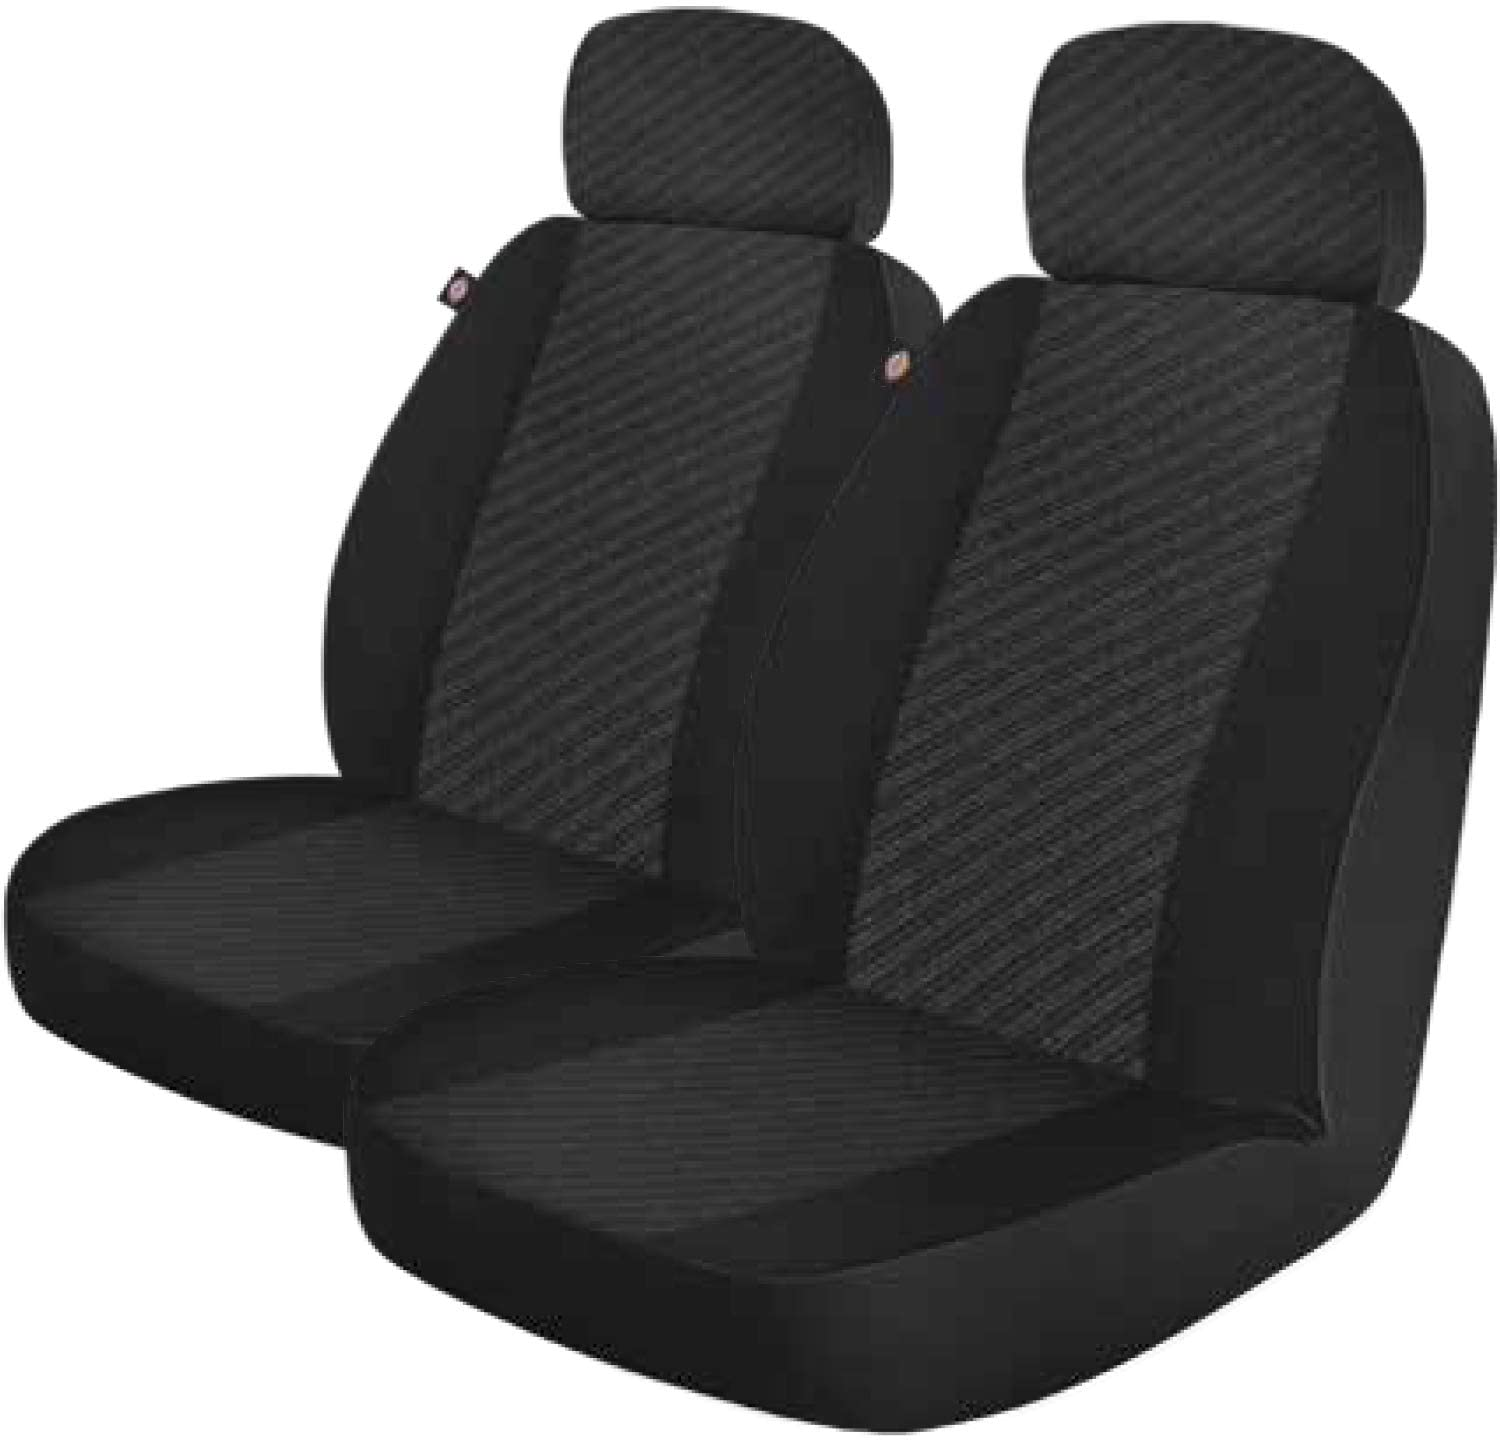 2-Piece Seat Cover DICKIES 3003417LD Black